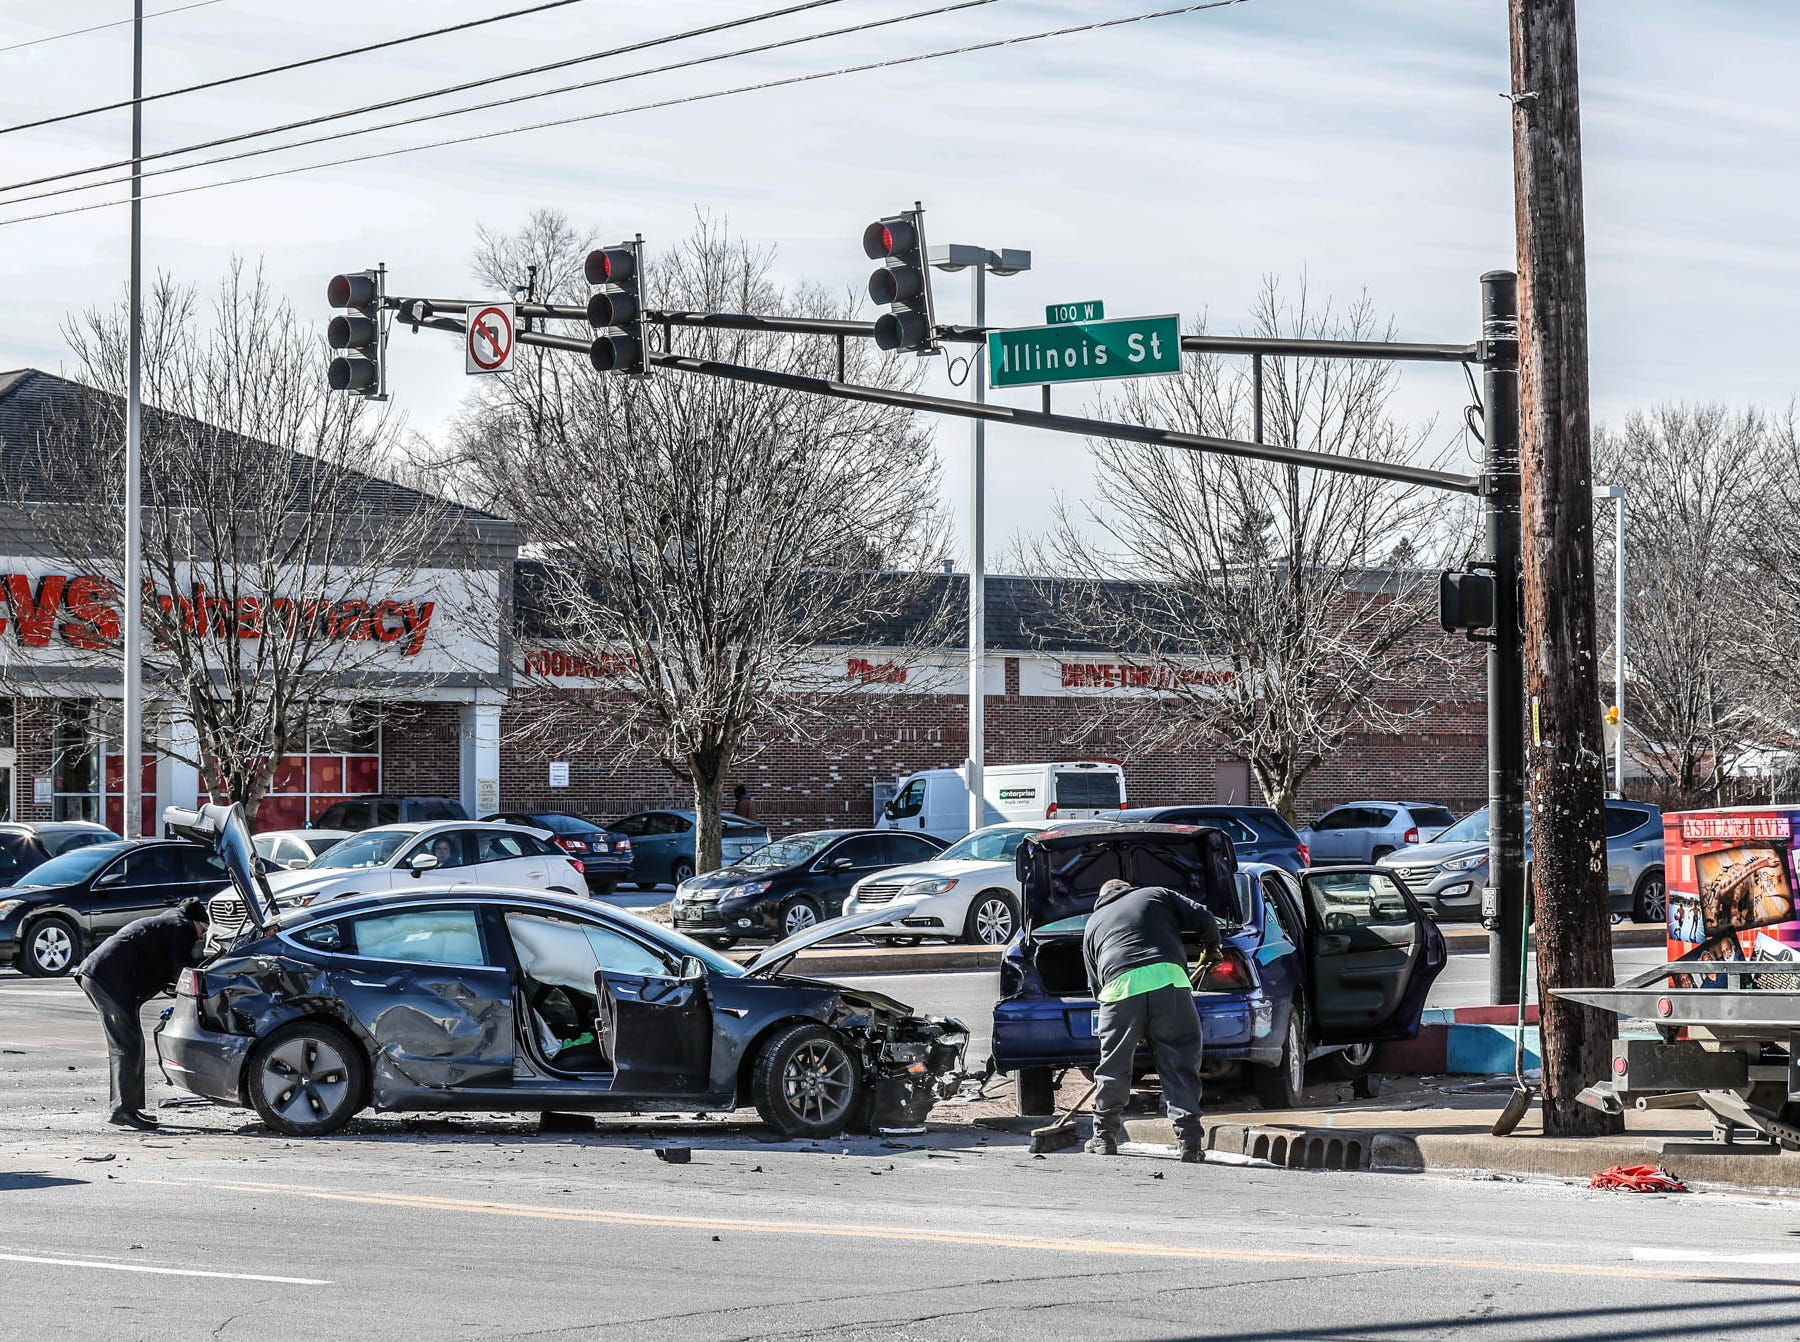 A multi-vehicle crash at the intersection of Illinois Street and 38th St. included a Tesla on Thursday, Jan. 31, 2019. The Tesla's owner had waited over a year for the car and could be seen with tears running down his cheeks in the sub-zero temperatures.